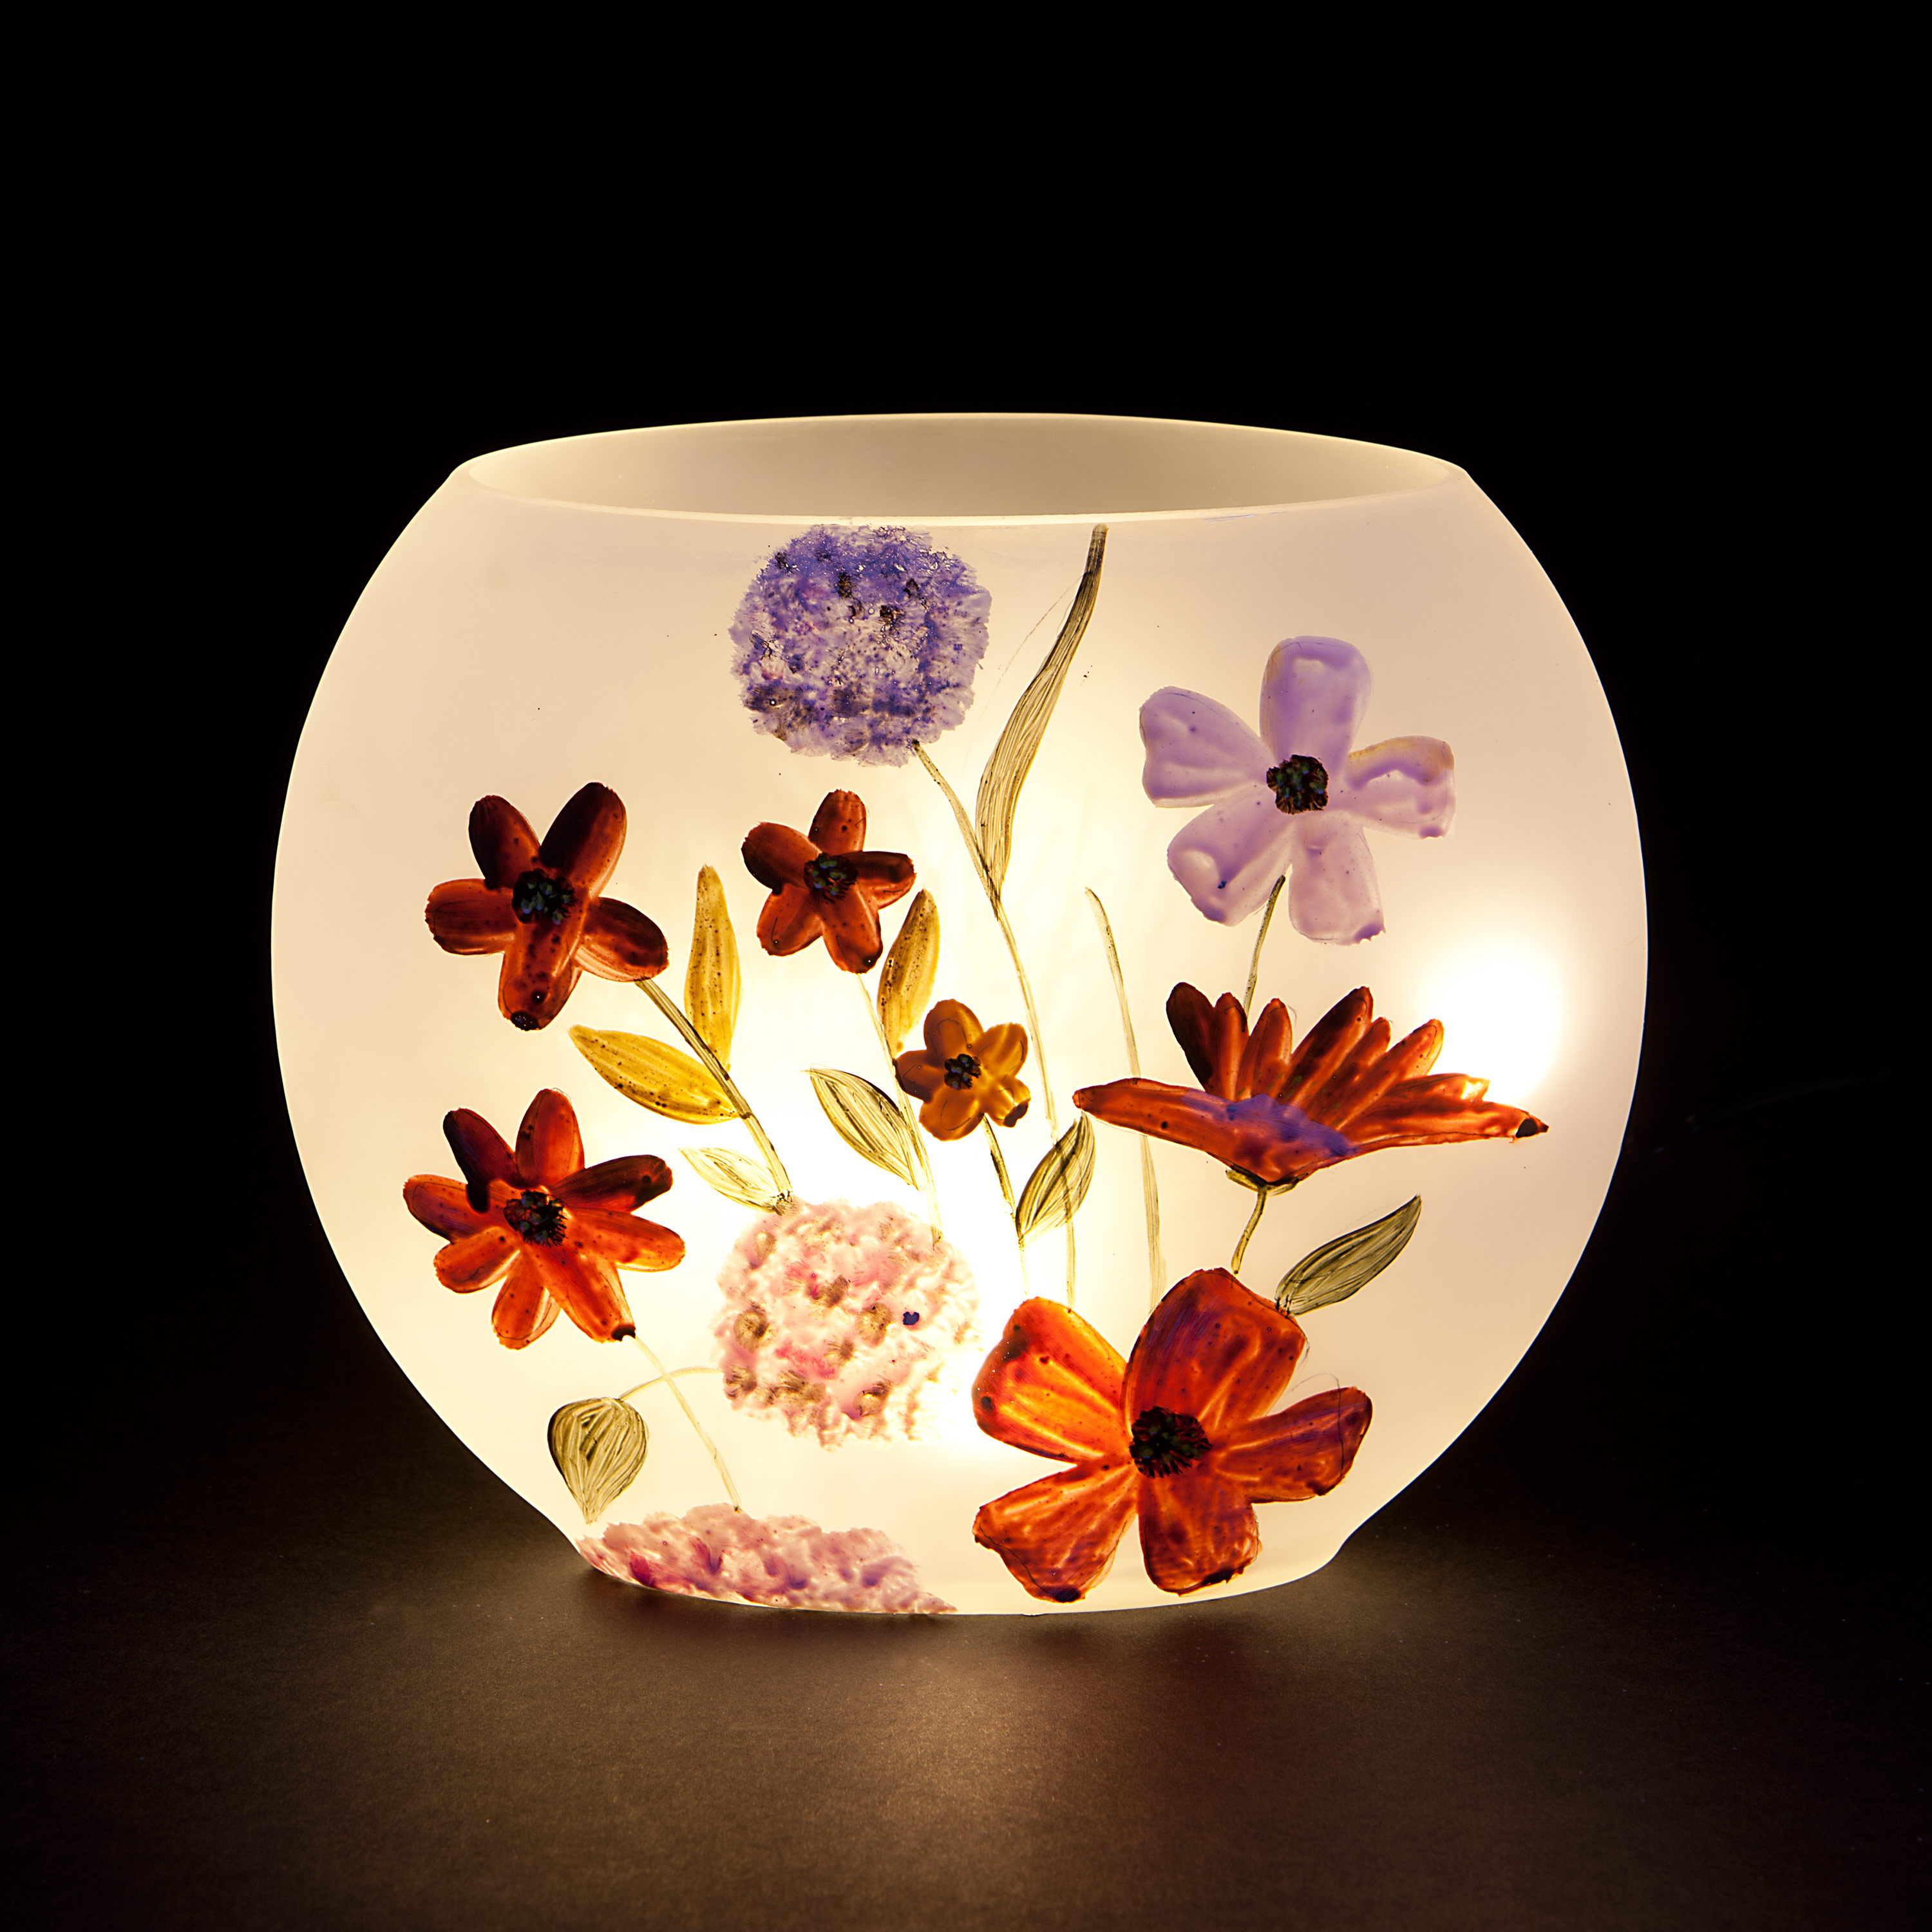 Christmas Decoration|Christmas Tree Decoration 'Pressed Flowers' Oval Vase with Warm White LEDs - Red